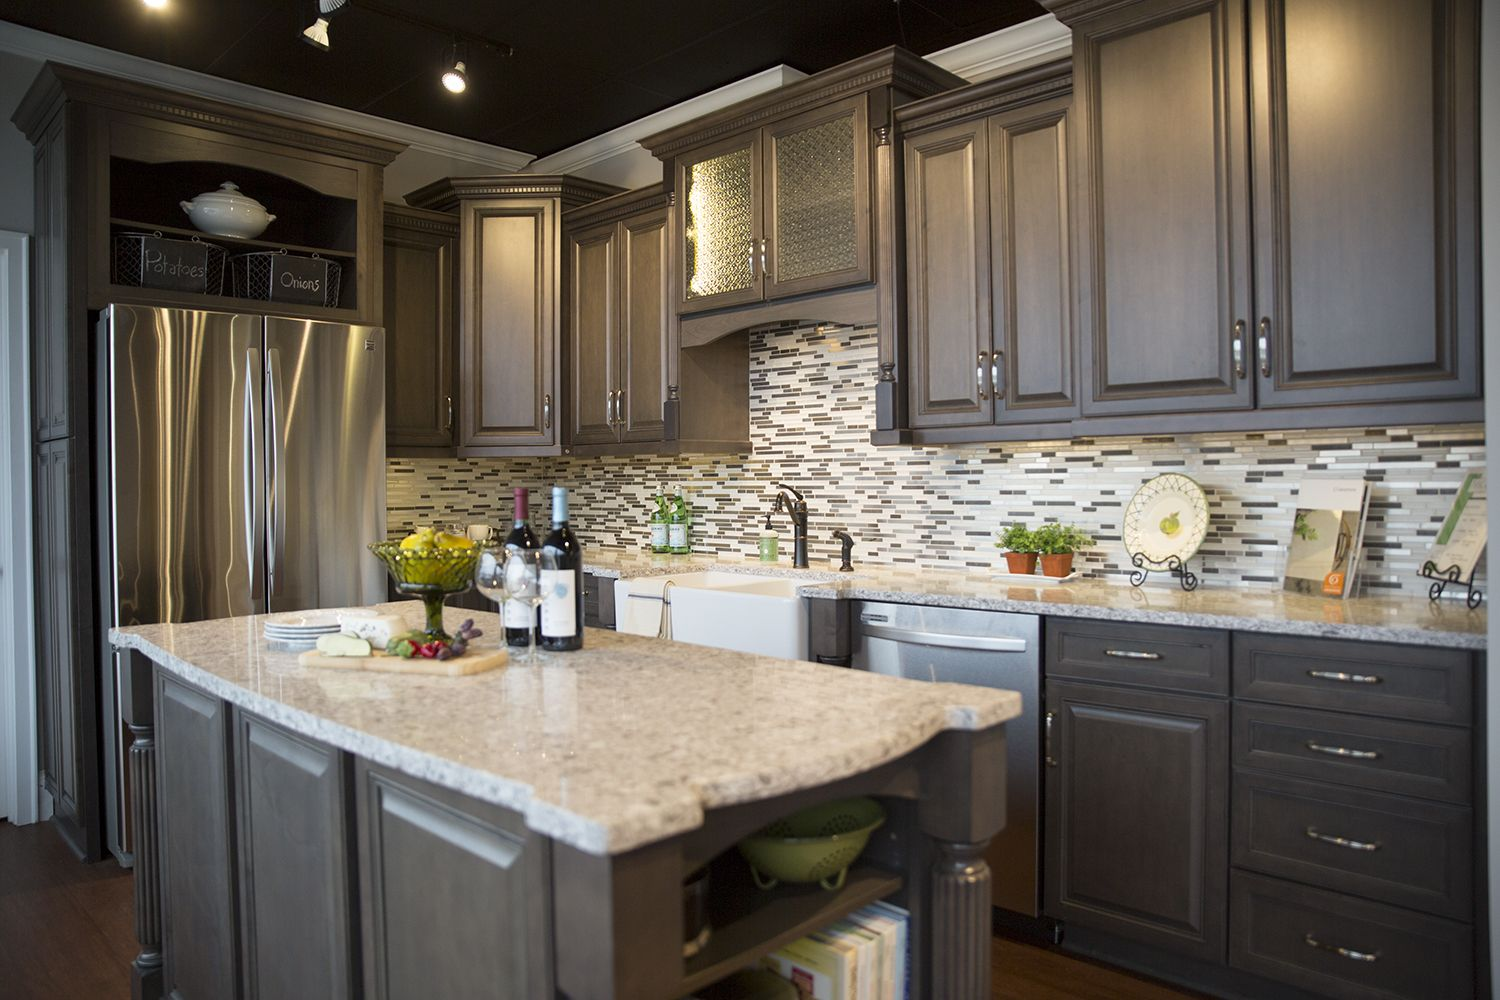 Marsh Cabinets Arlington 1 In Graphite No Glaze Kitchen Cabinets And Countertops Kitchen Cabinet Styles Shaker Style Kitchen Cabinets